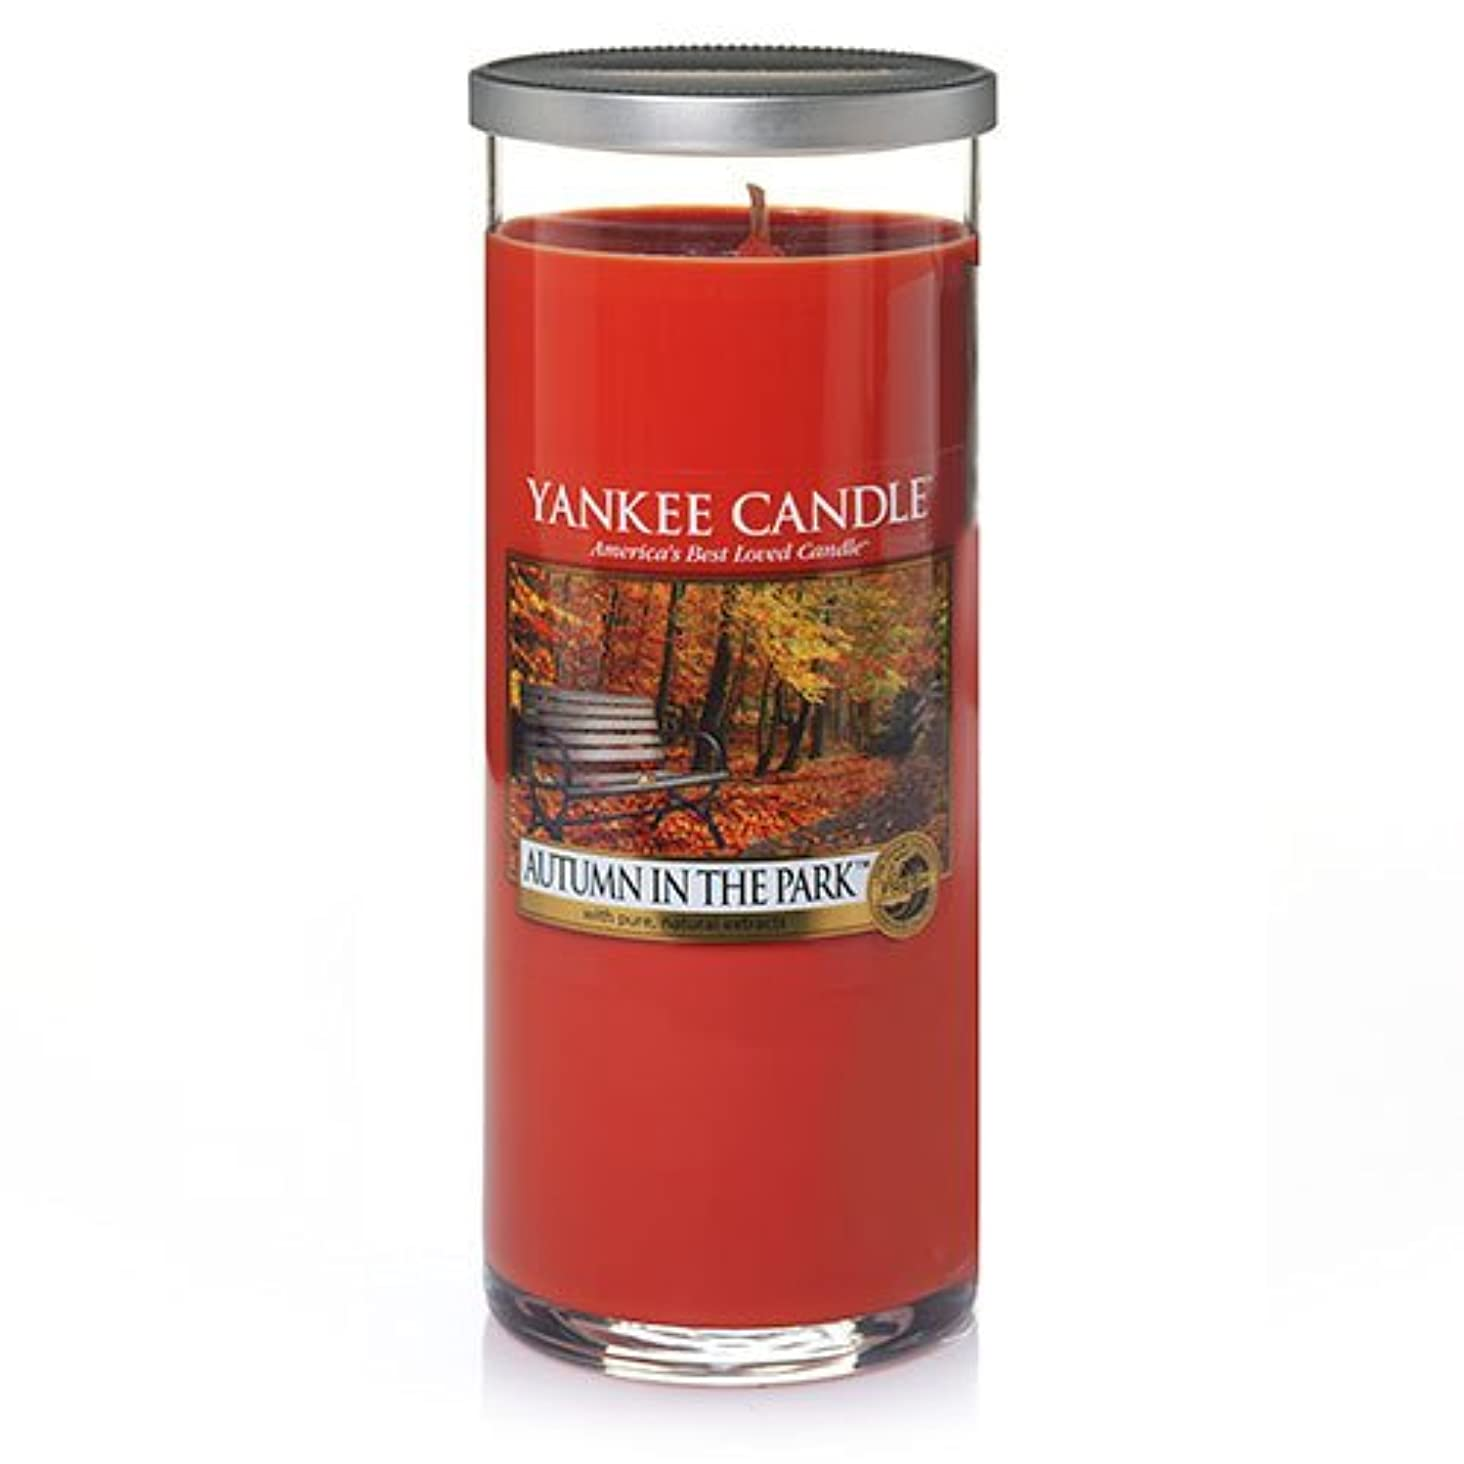 不愉快に女将印象的Yankee Candle Autumn In The Park Large Perfect Pillar Candle、新鮮な香り